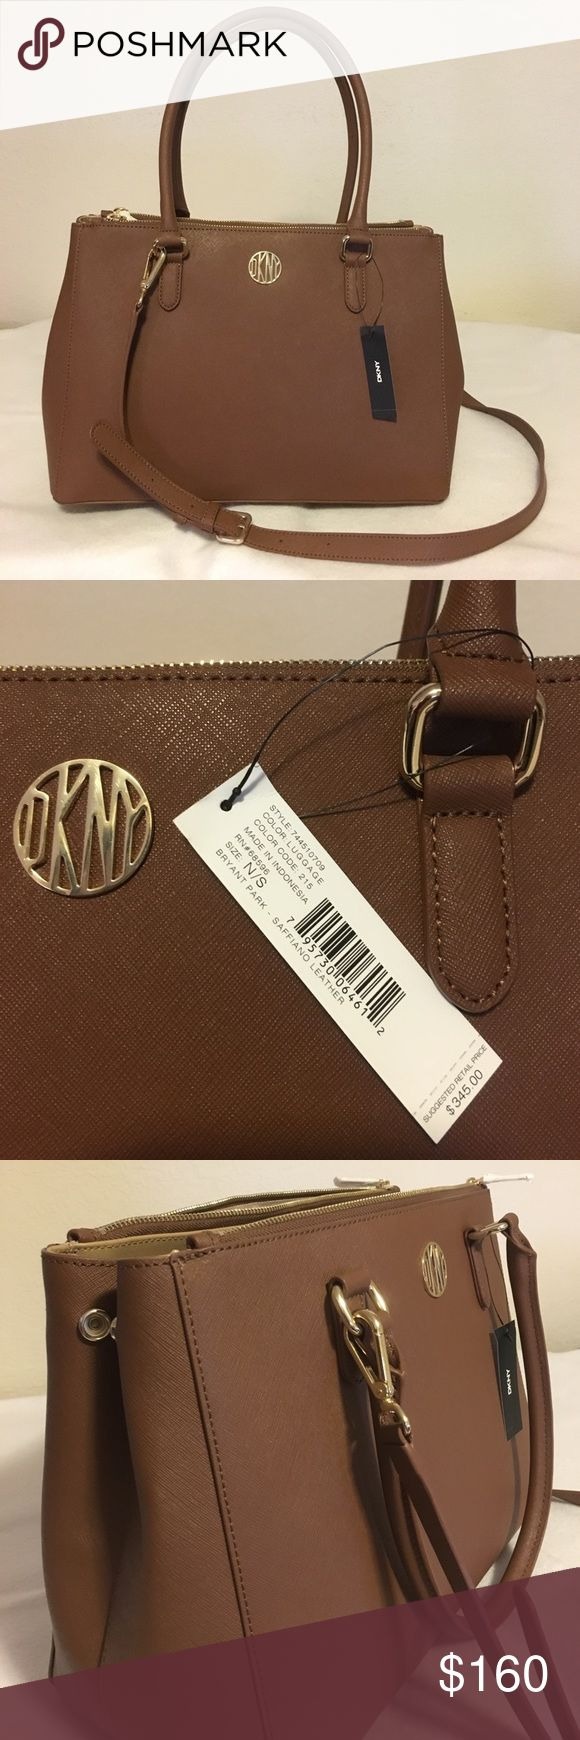 DKNY Genuine Leather Designer Handbag Brown DKNY genuine leather, brown, expandable sides, includes cross body strap, ample storage space, 2 large zippered pouches, 1 smaller zipper pocket, additional interior pockets, sleek profile. DKNY Bags Shoulder Bags